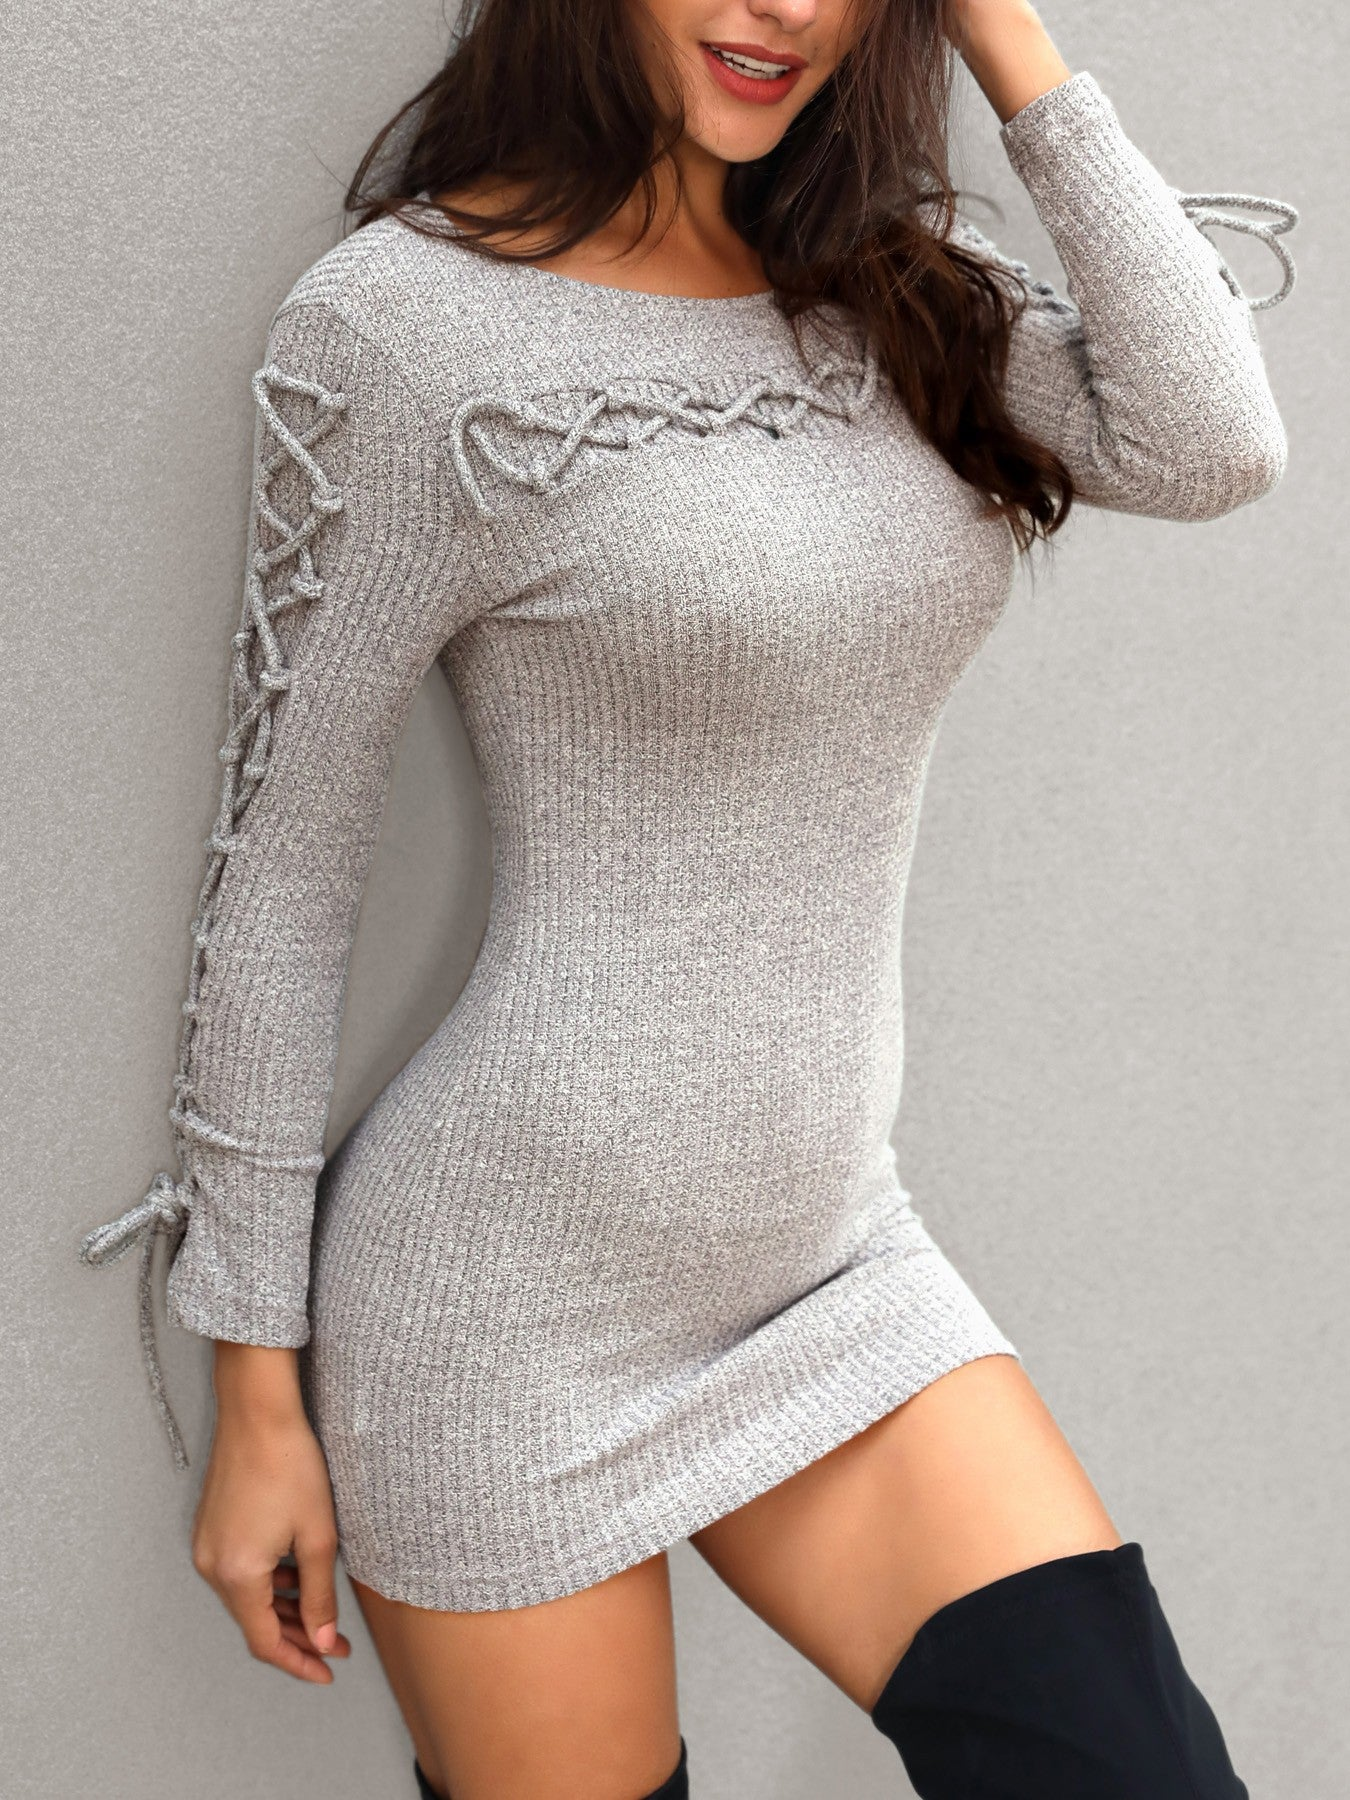 Lace Up Long Sleeve Sweater Dress - DadHats2ow6ix